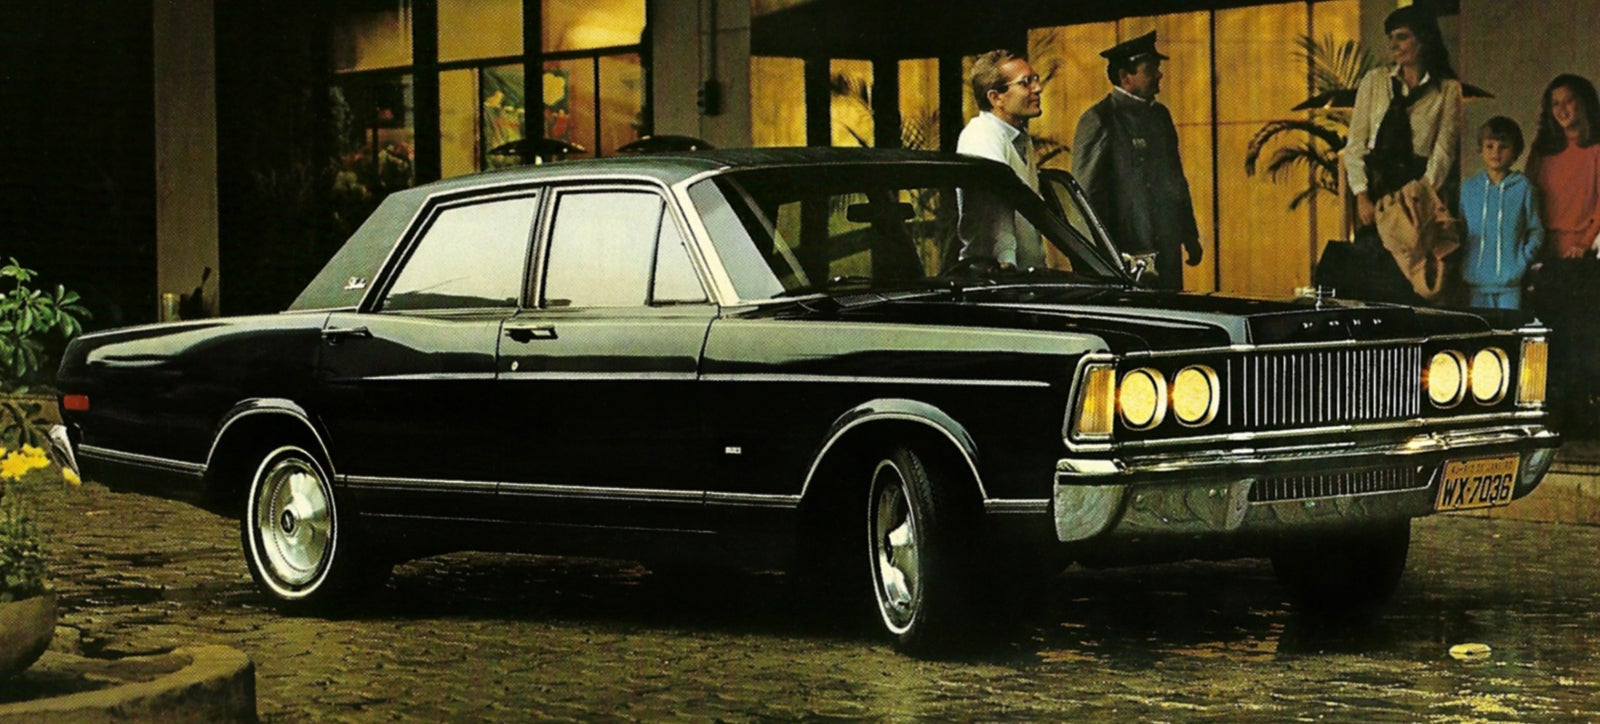 This 1970s Lincoln Is Really A Brazilian 1980s Ford From The 60s